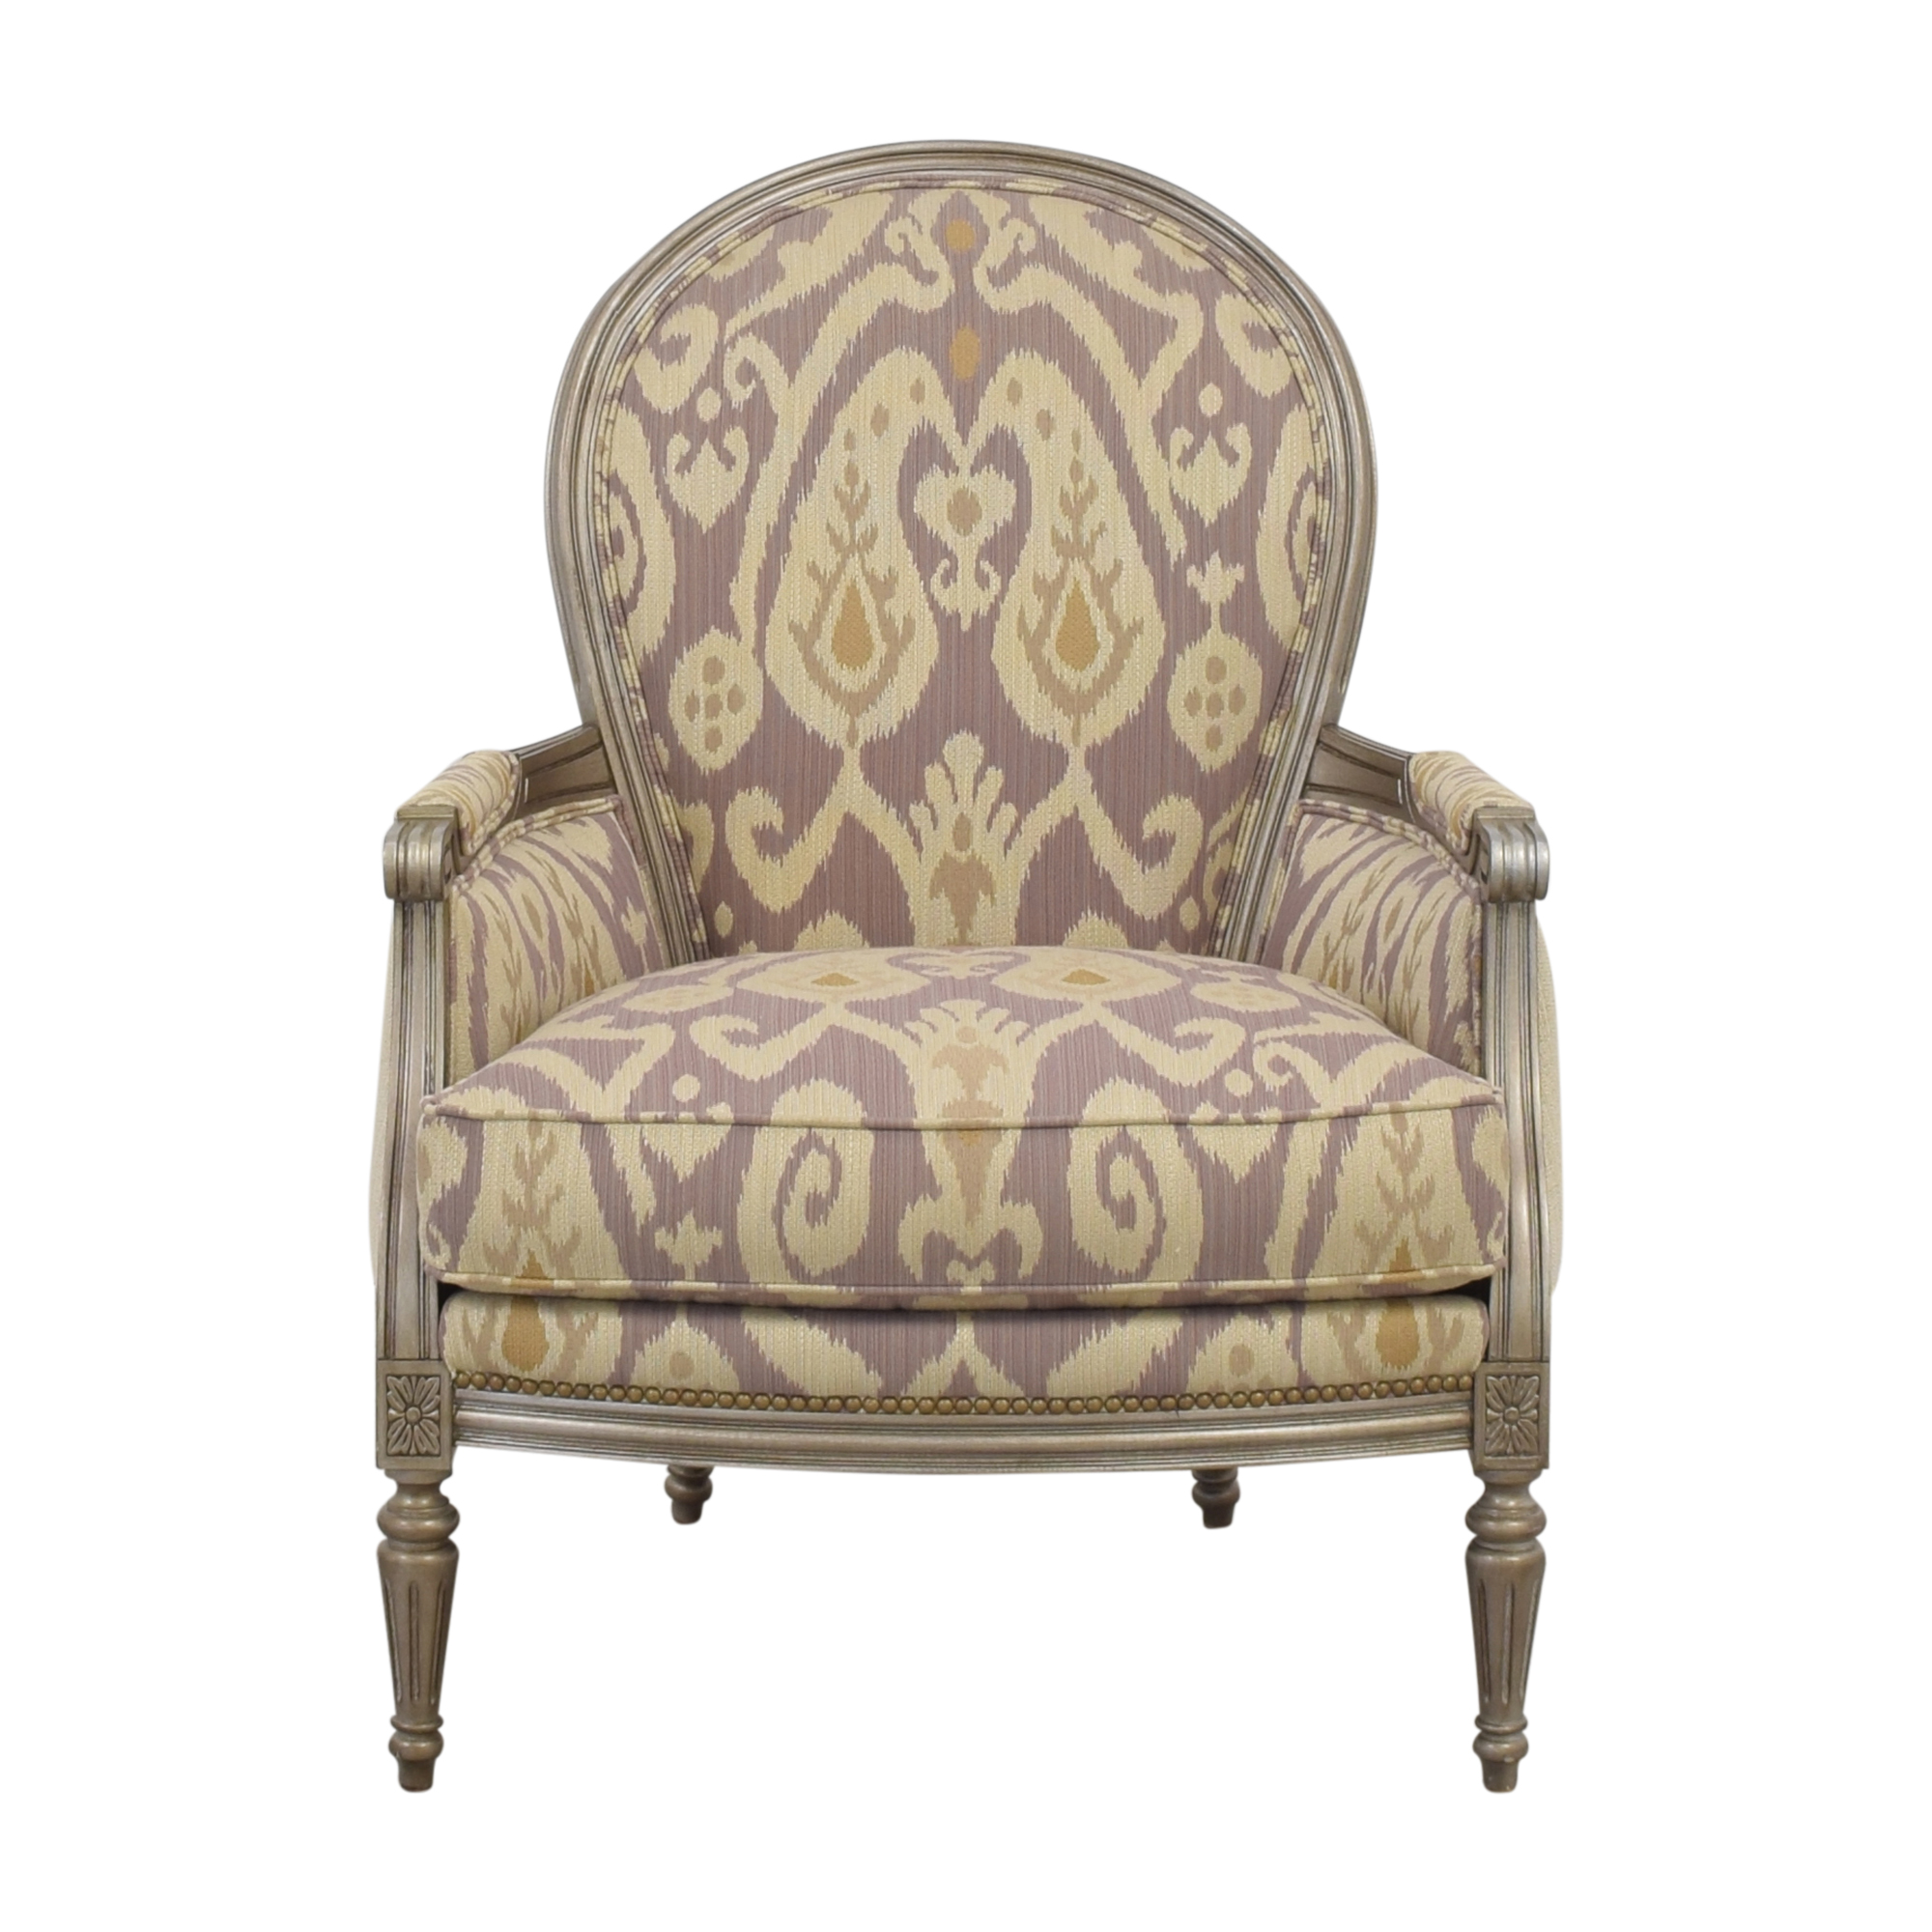 Ethan Allen Ethan Allen Suzette Chair for sale